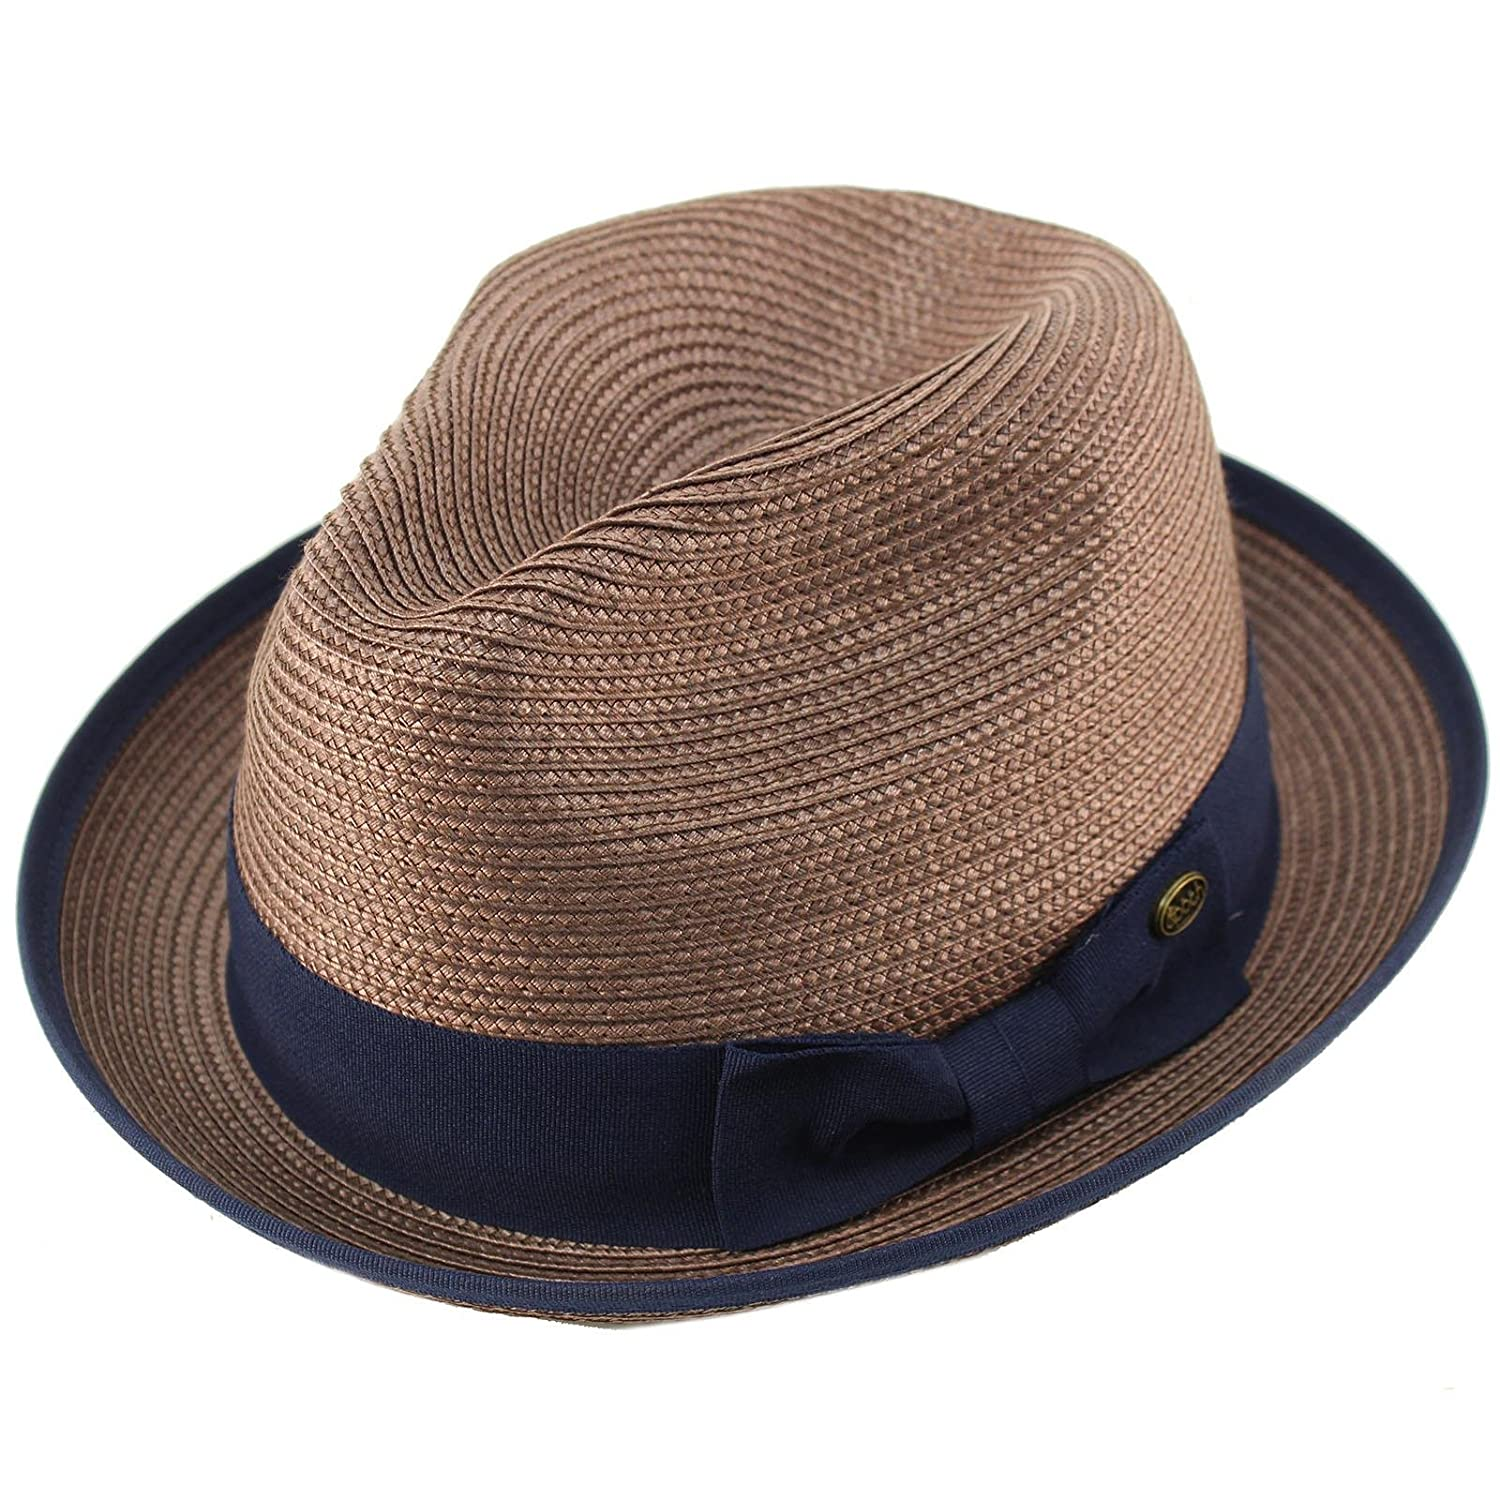 850733dfa91 Epoch Men's Classy Travel Crushable 2tone Derby Fedora Upturn Curl Brim Hat  at Amazon Men's Clothing store: